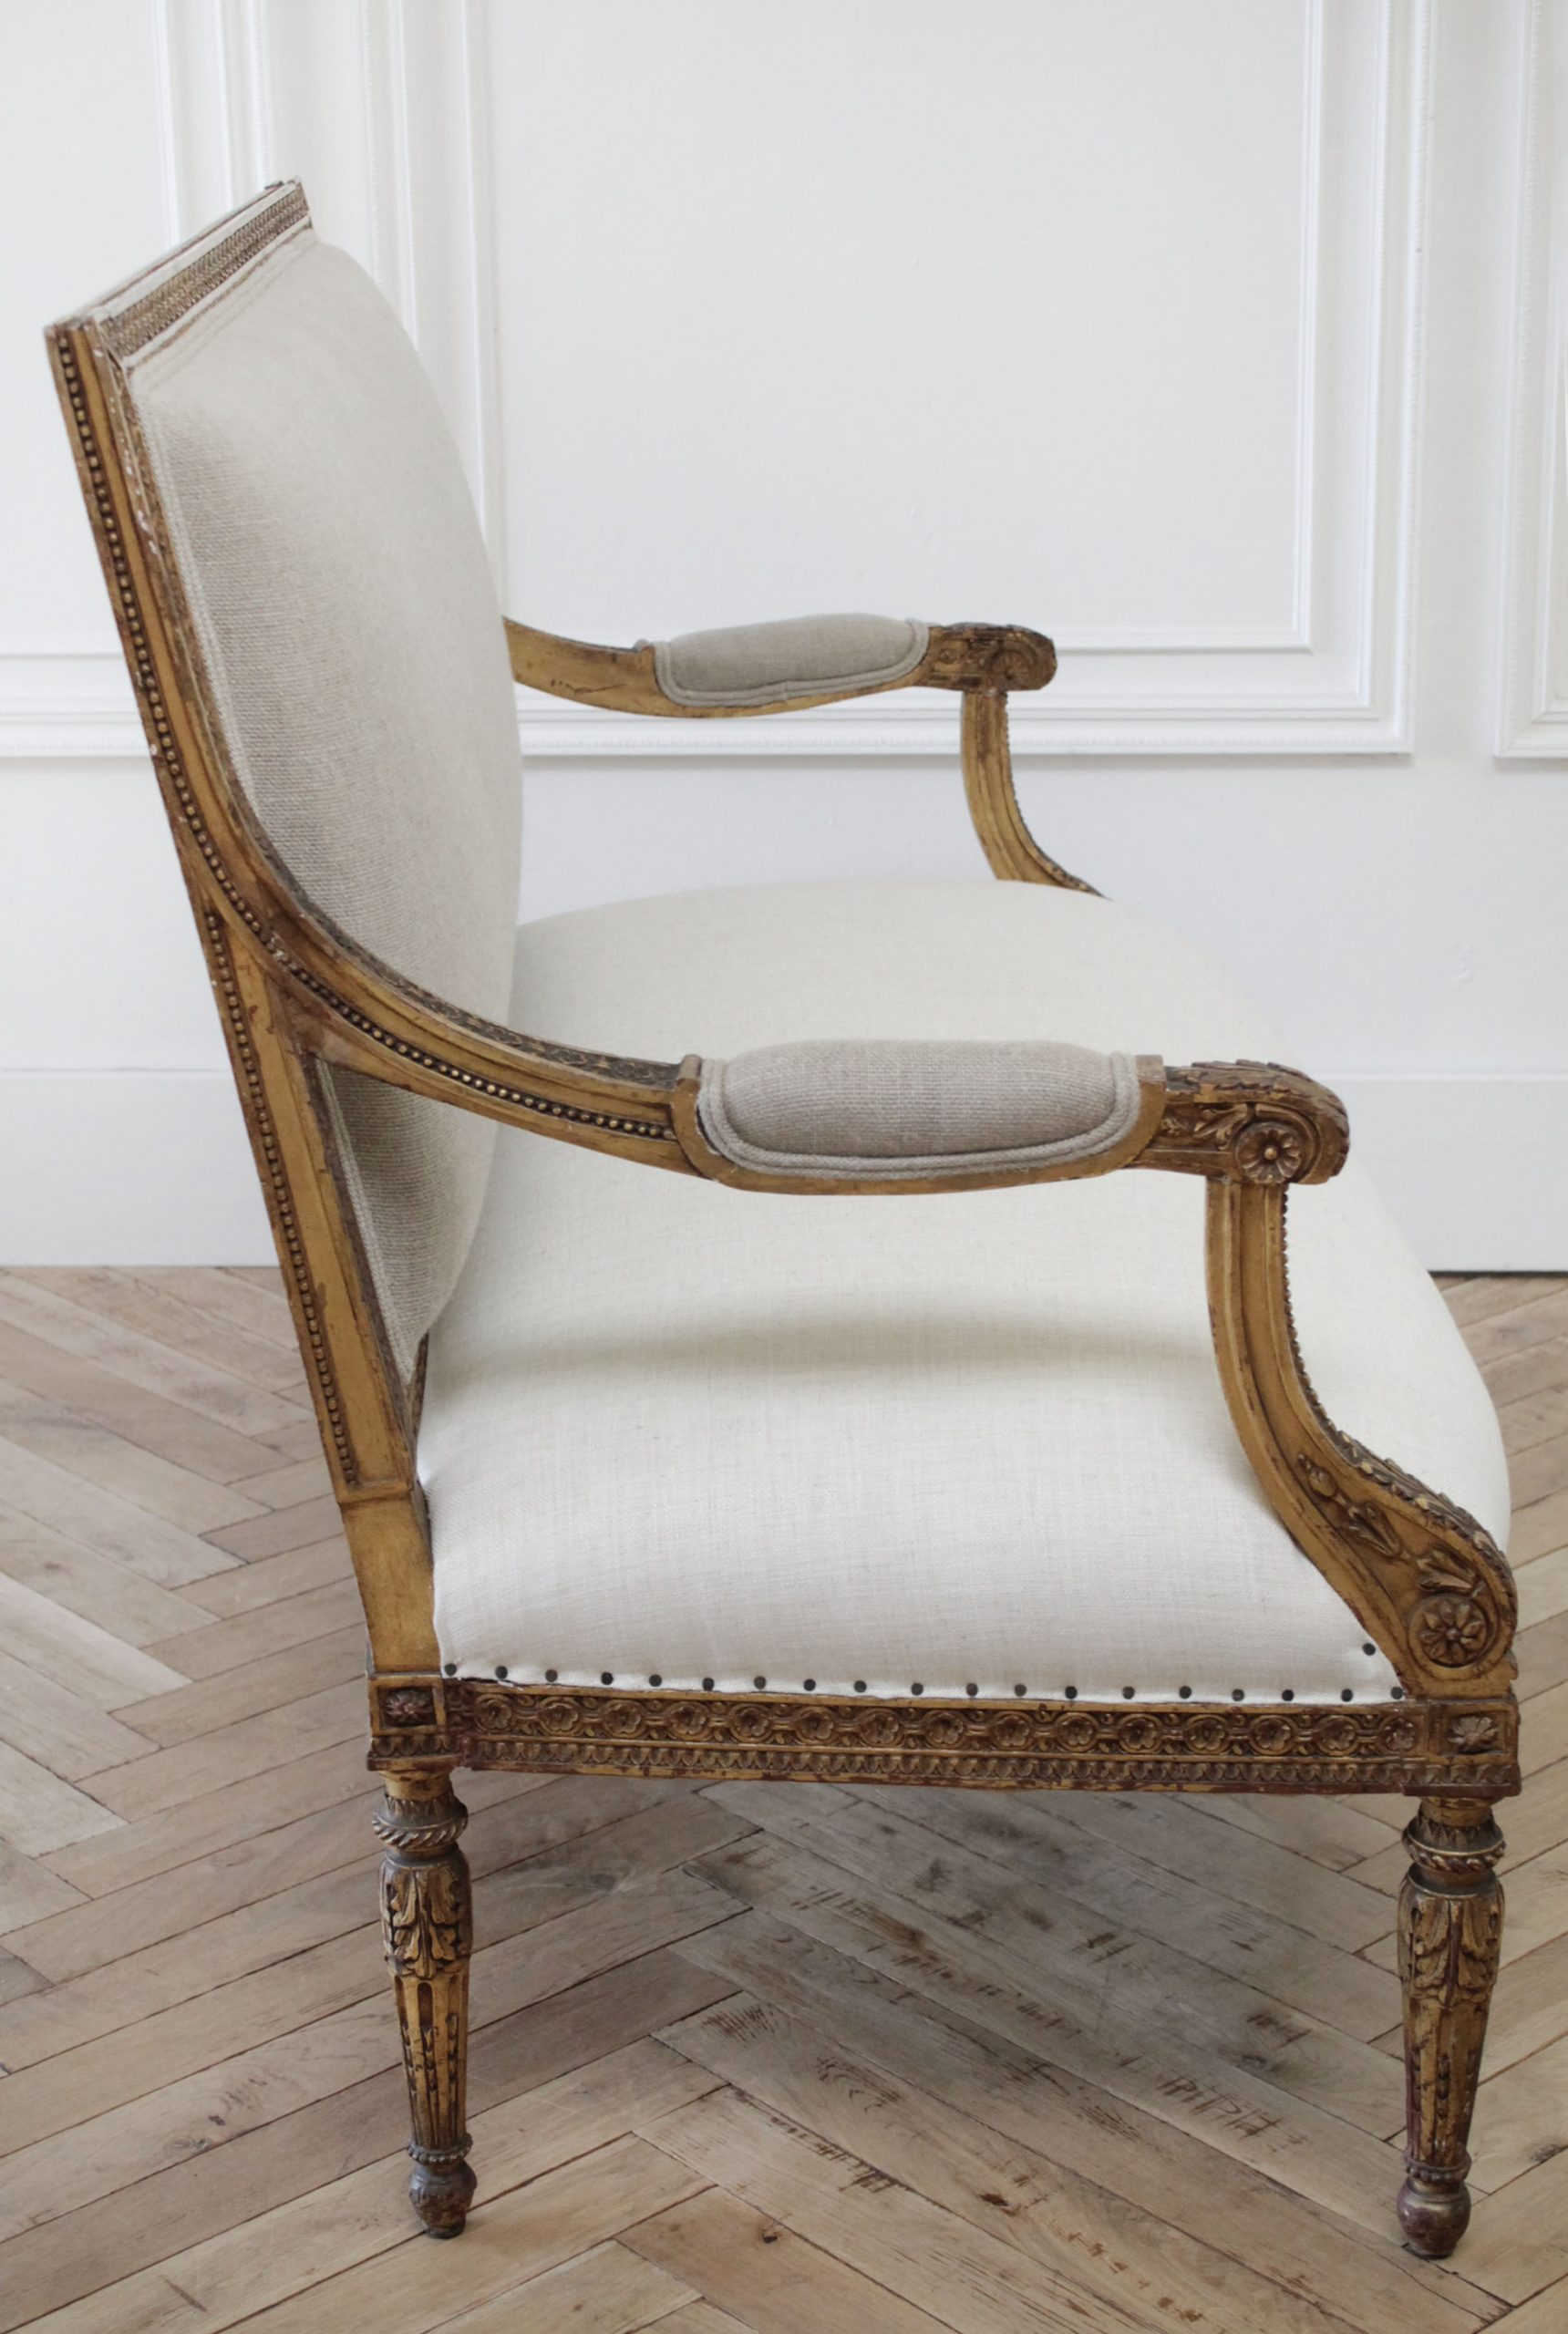 Antique Louis XVI Style Giltwood Settee in Linen